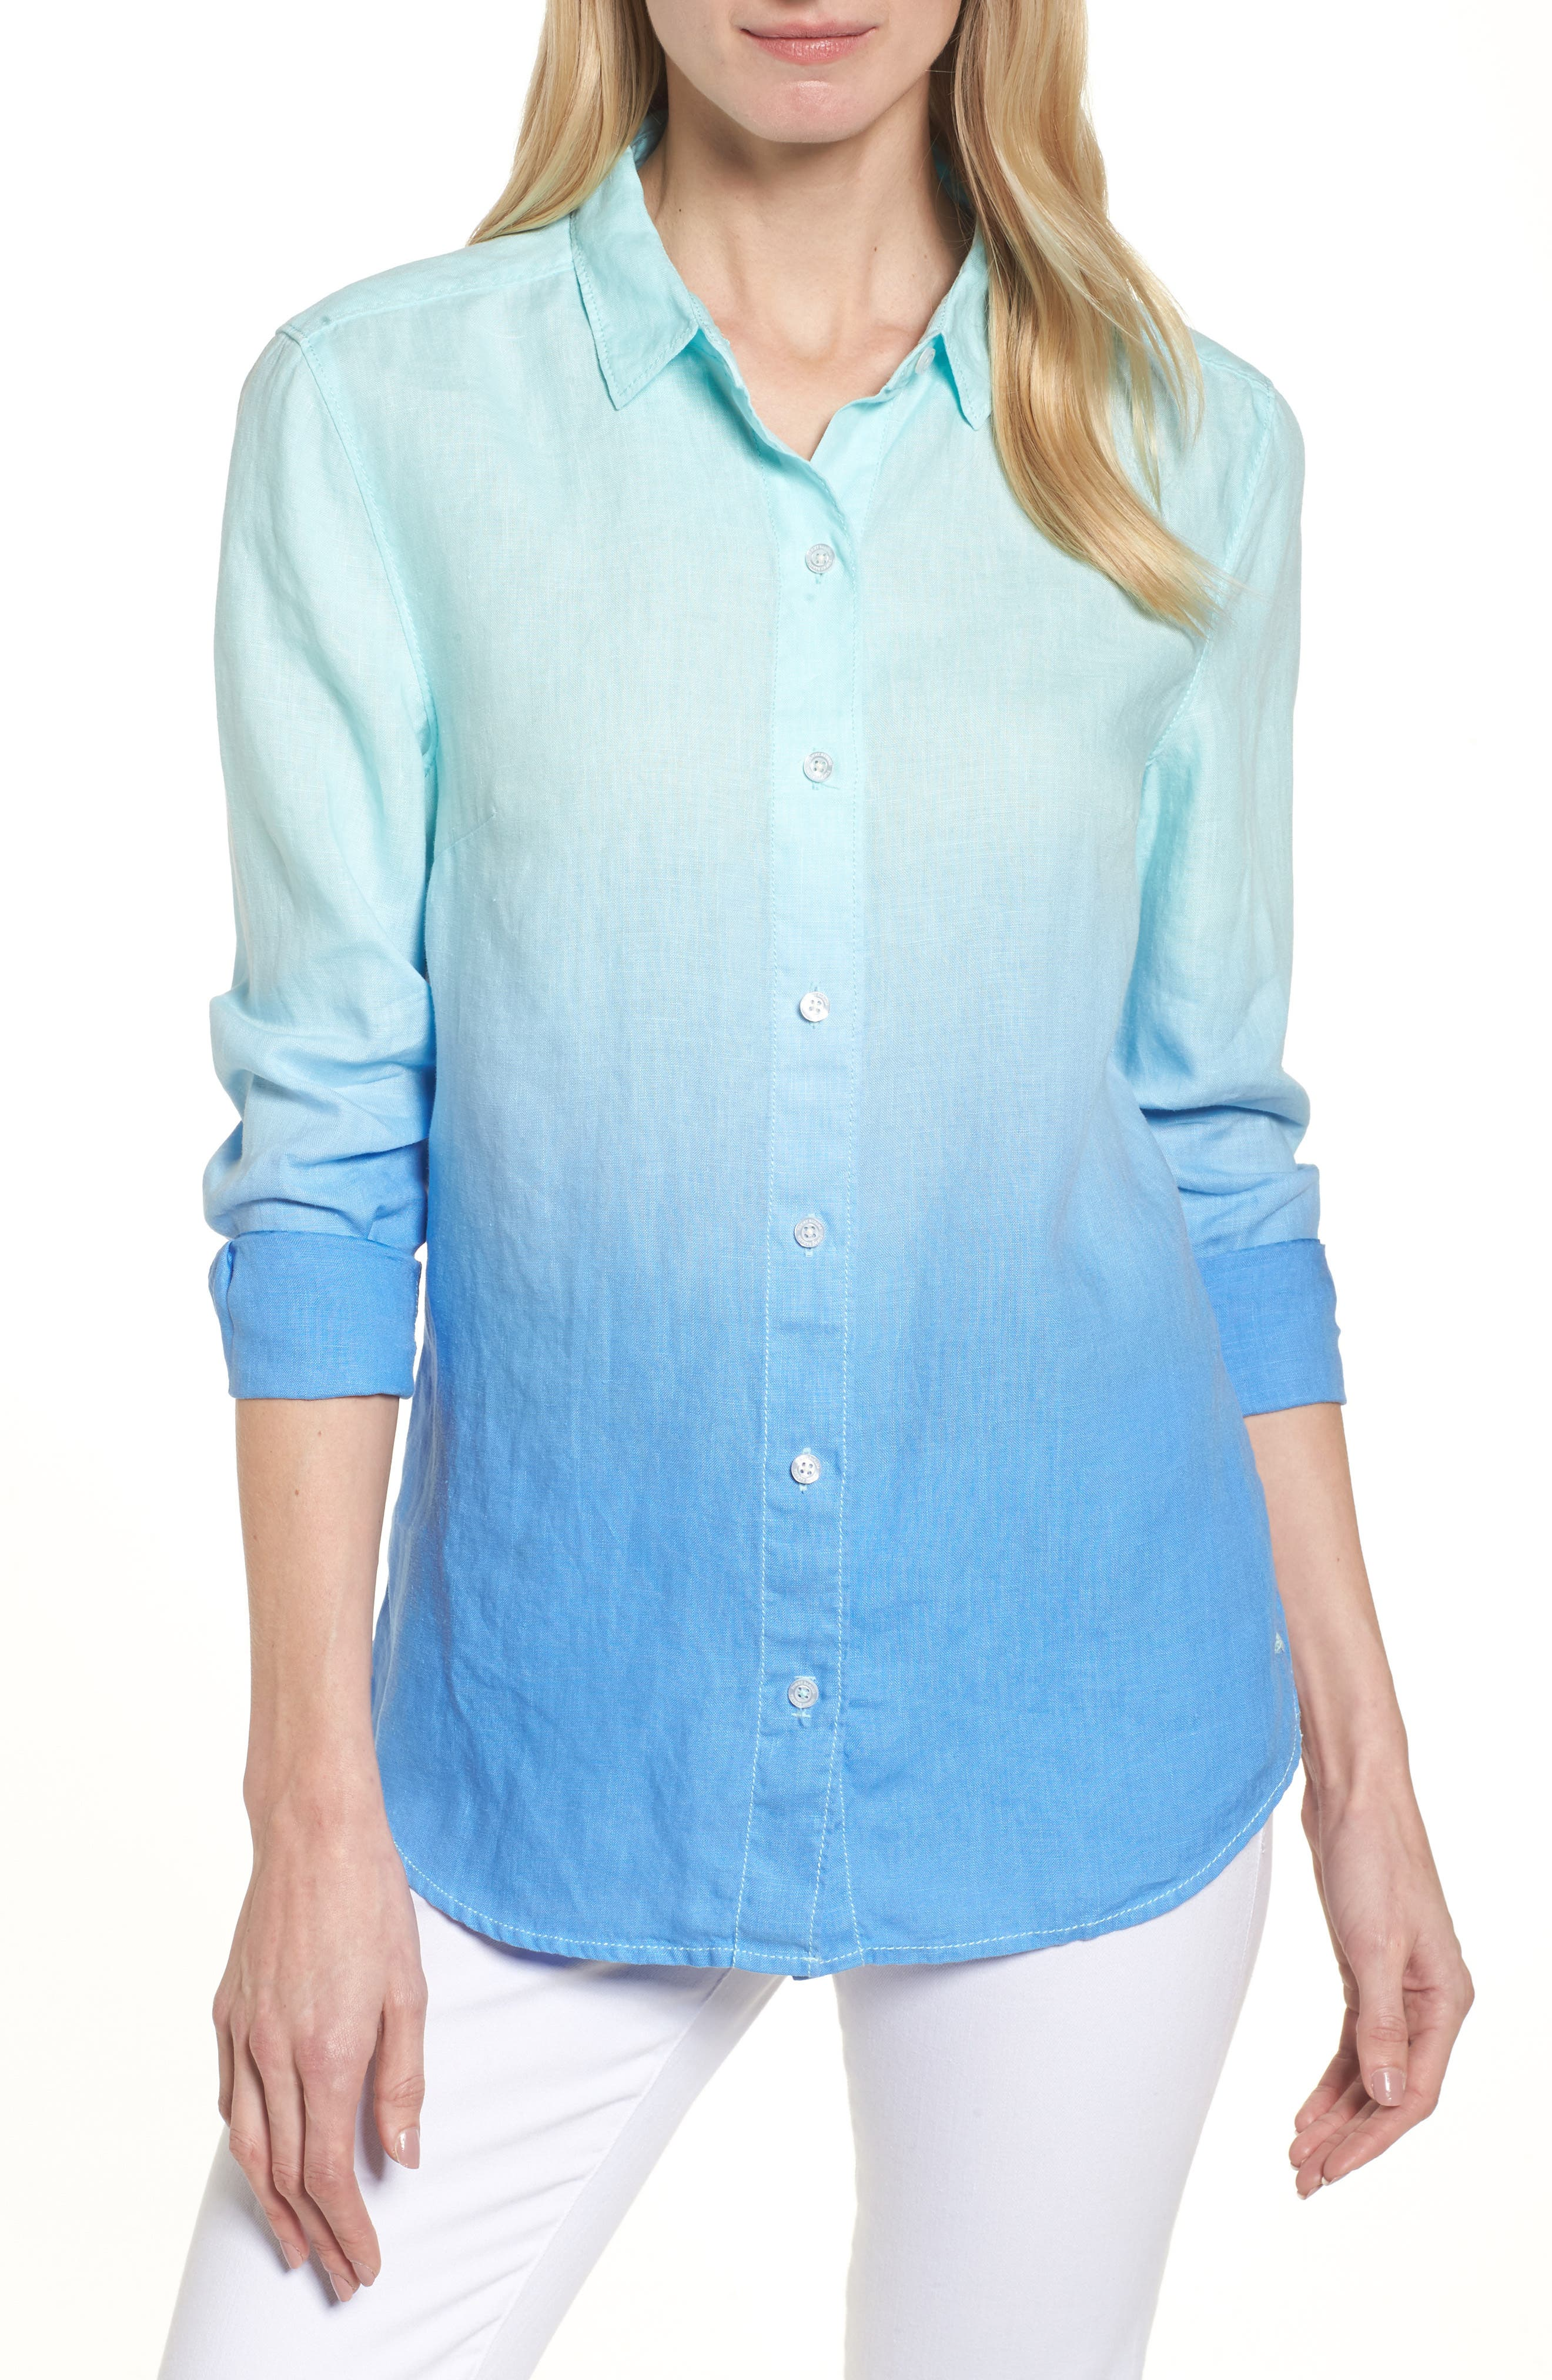 Alternate Image 1 Selected - Tommy Bahama Two Palms Dip Dye Top